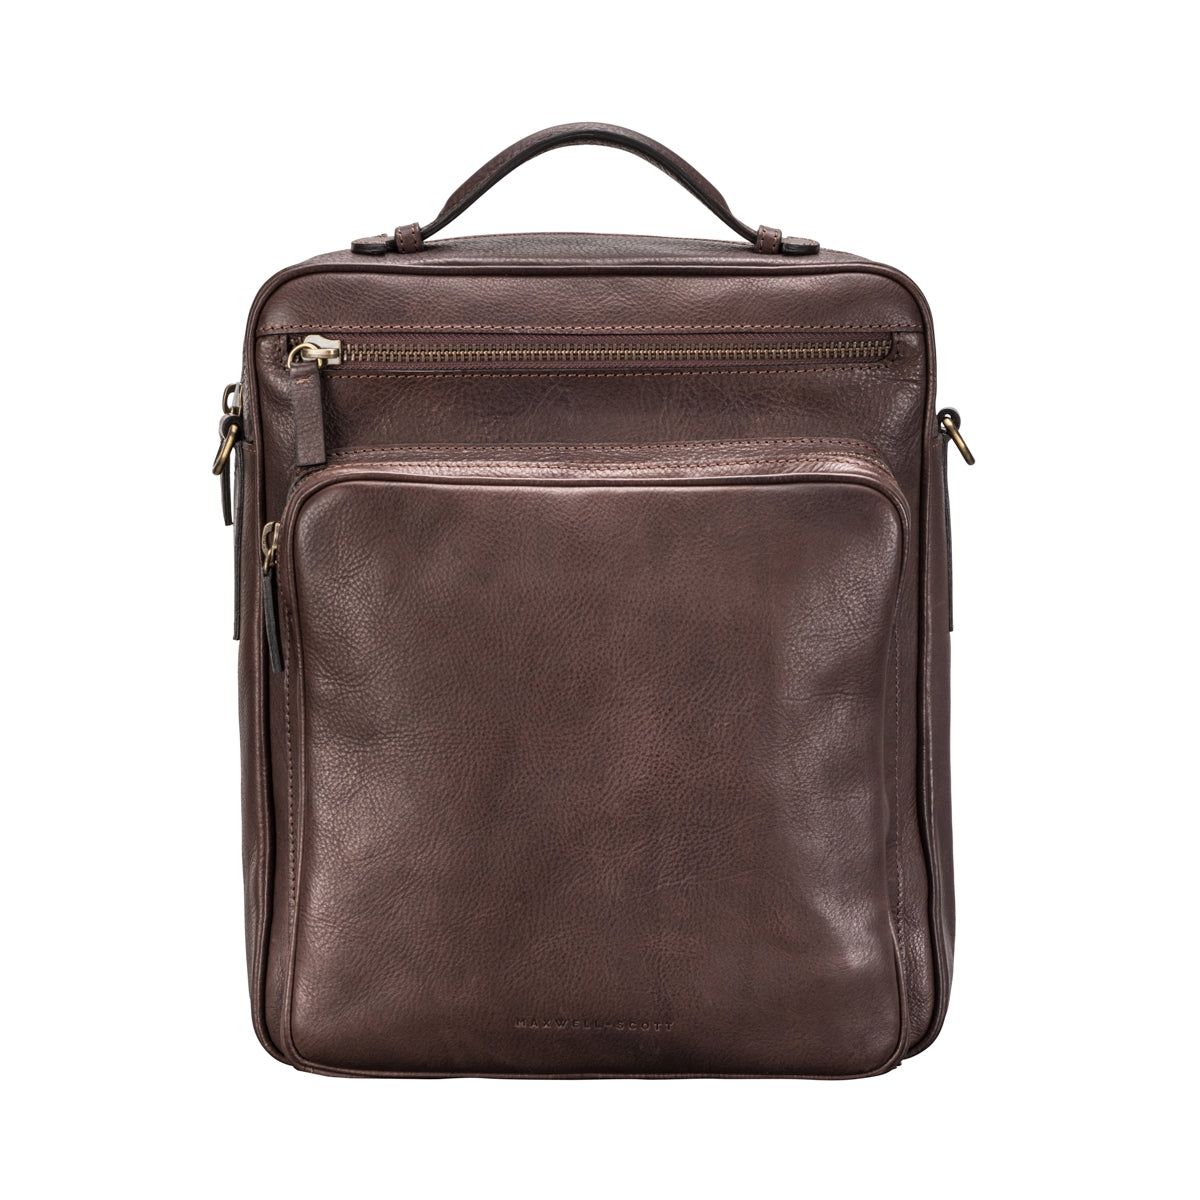 Image 1 of the 'SantinoL' Men's Brown Leather Convertible Backpack Shoulder